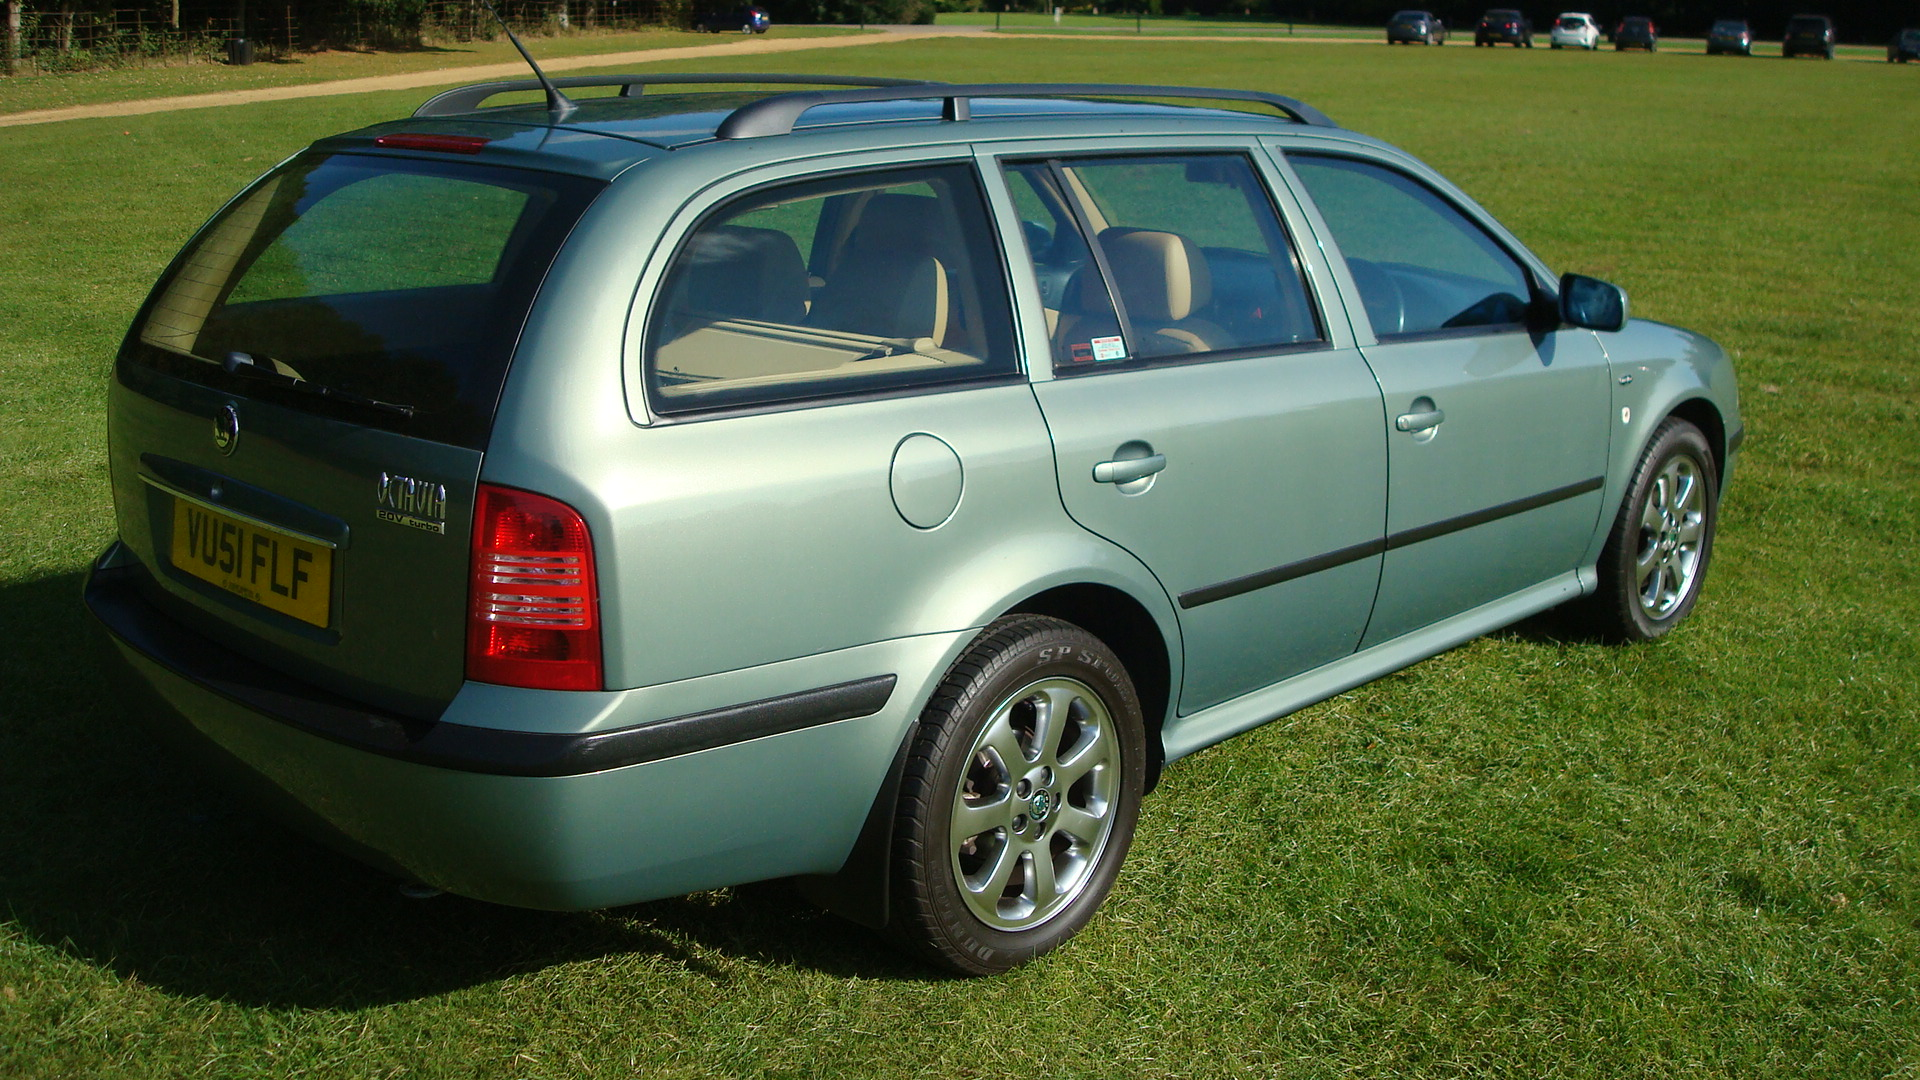 skoda octavia 1 8t laurin klement estate 33 000 miles only country classics country classics. Black Bedroom Furniture Sets. Home Design Ideas